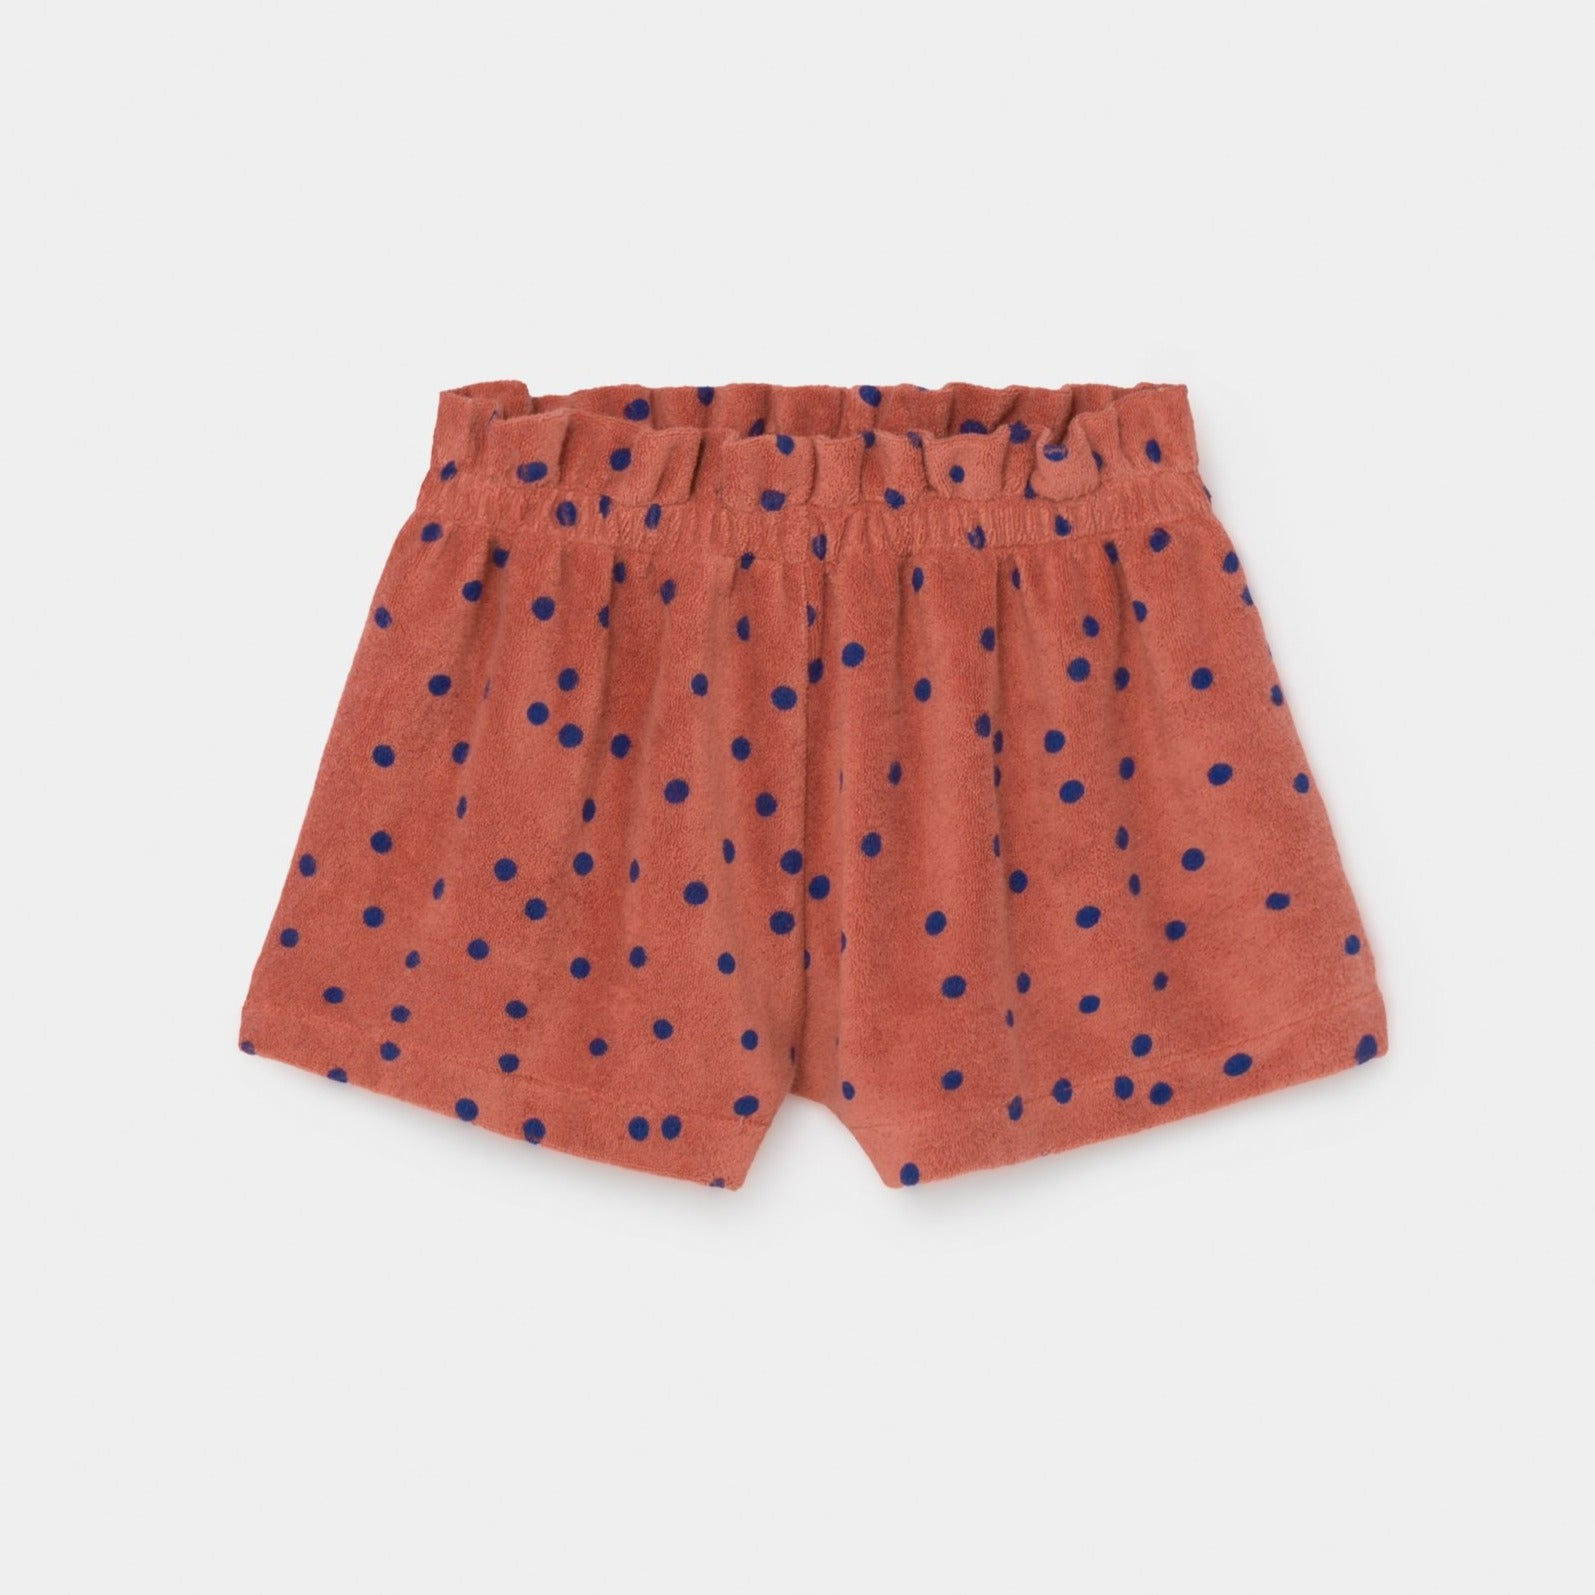 Bobo Choses dots terry towel shortsit, autumn leaf